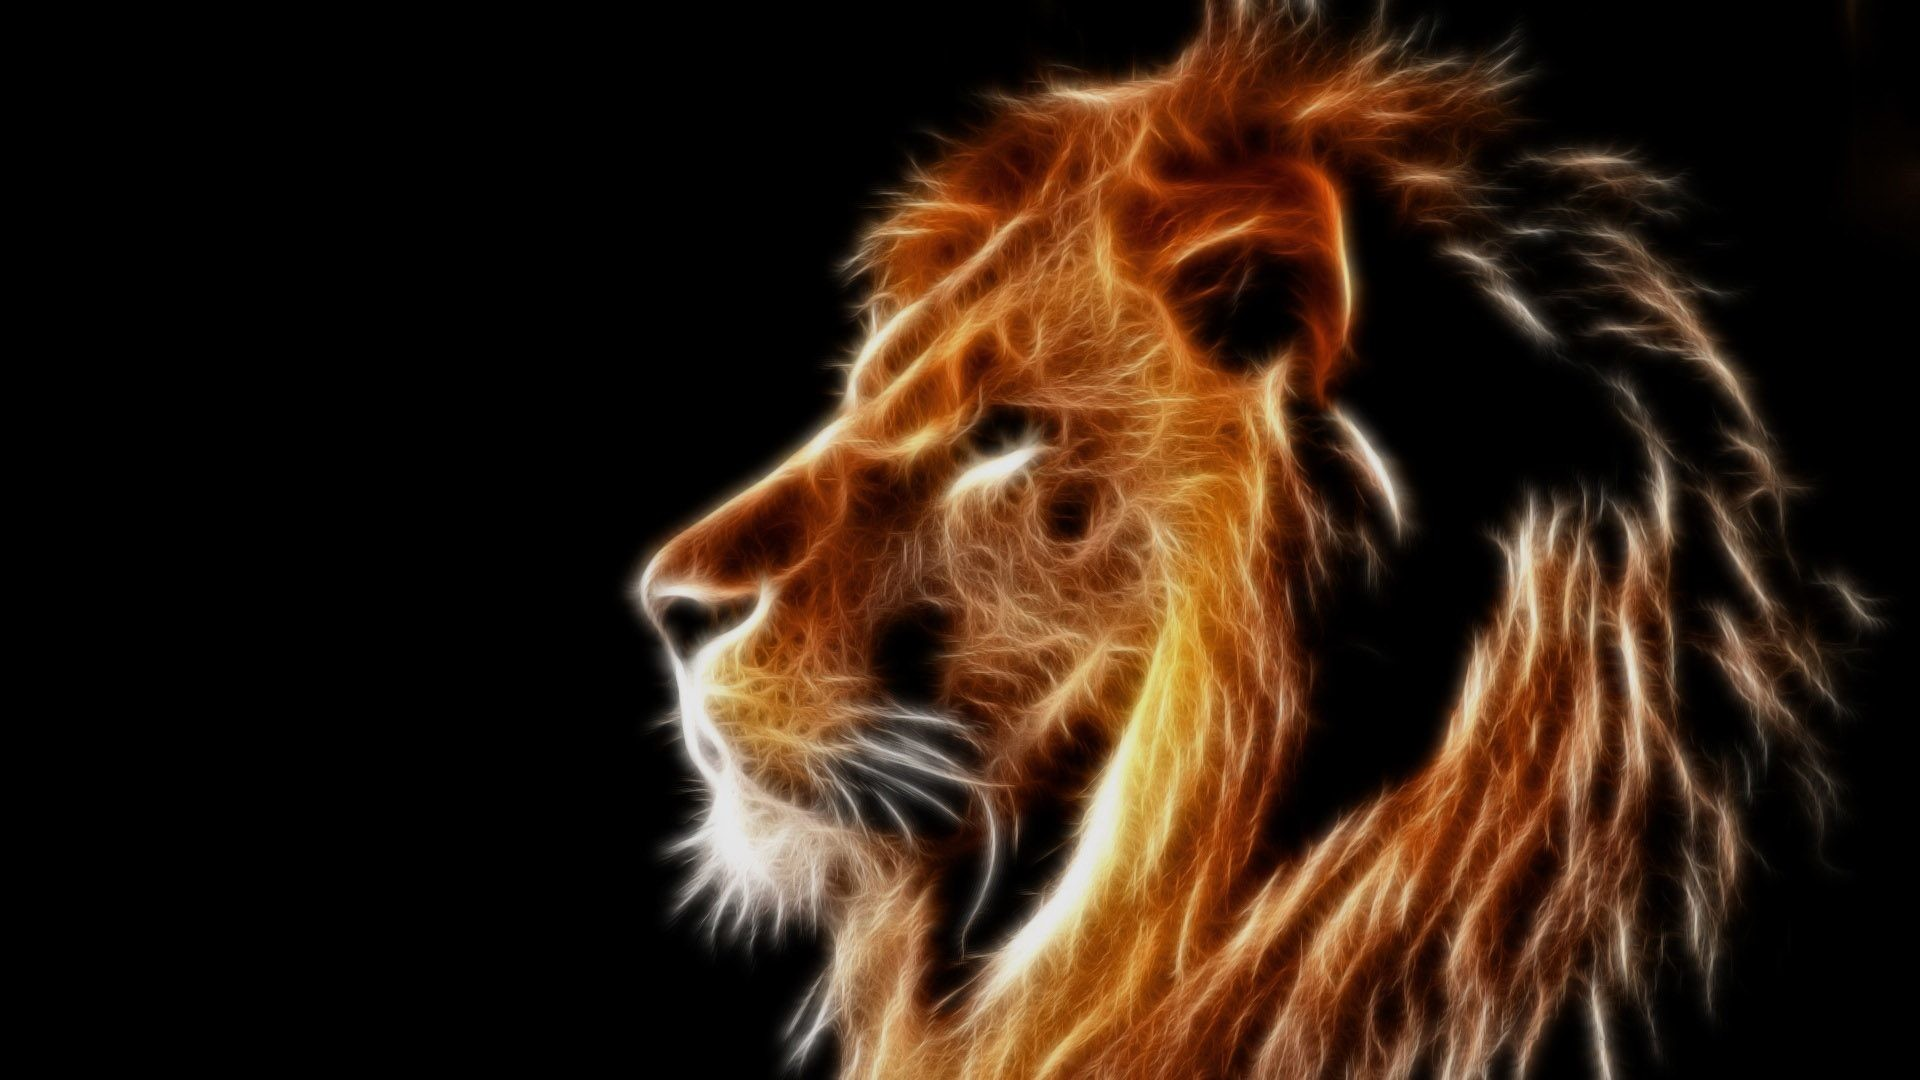 Roaring lion wallpaper 67 images - Best animal wallpaper download ...